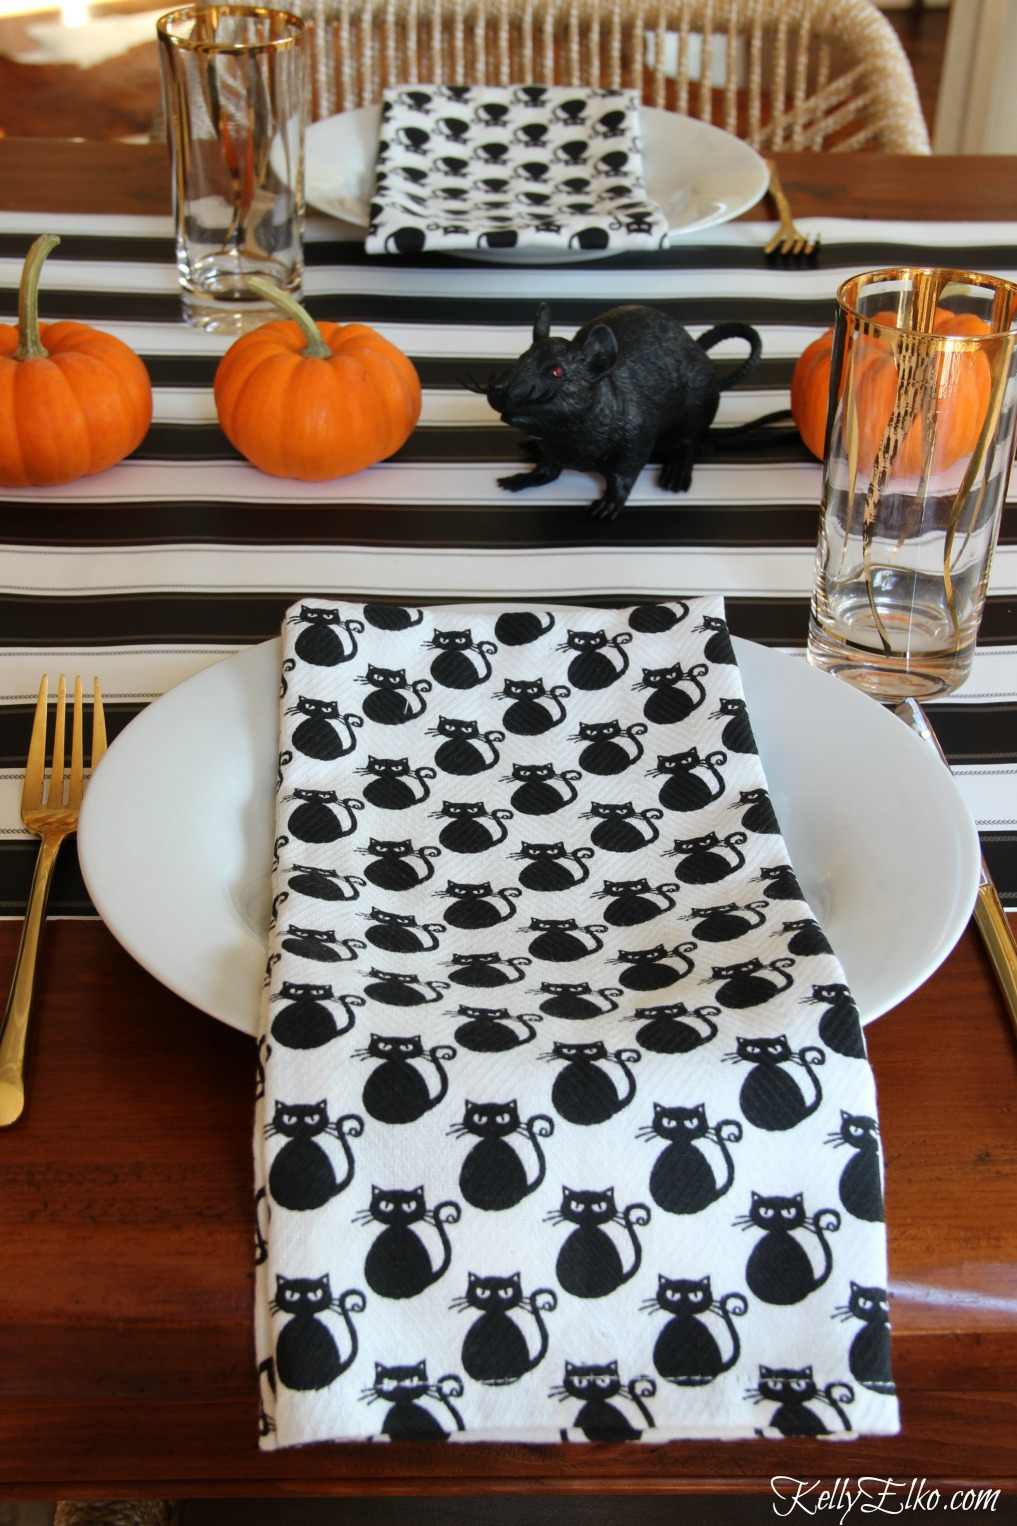 Halloween table black orange - love the black cat napkins! kellyelko.com